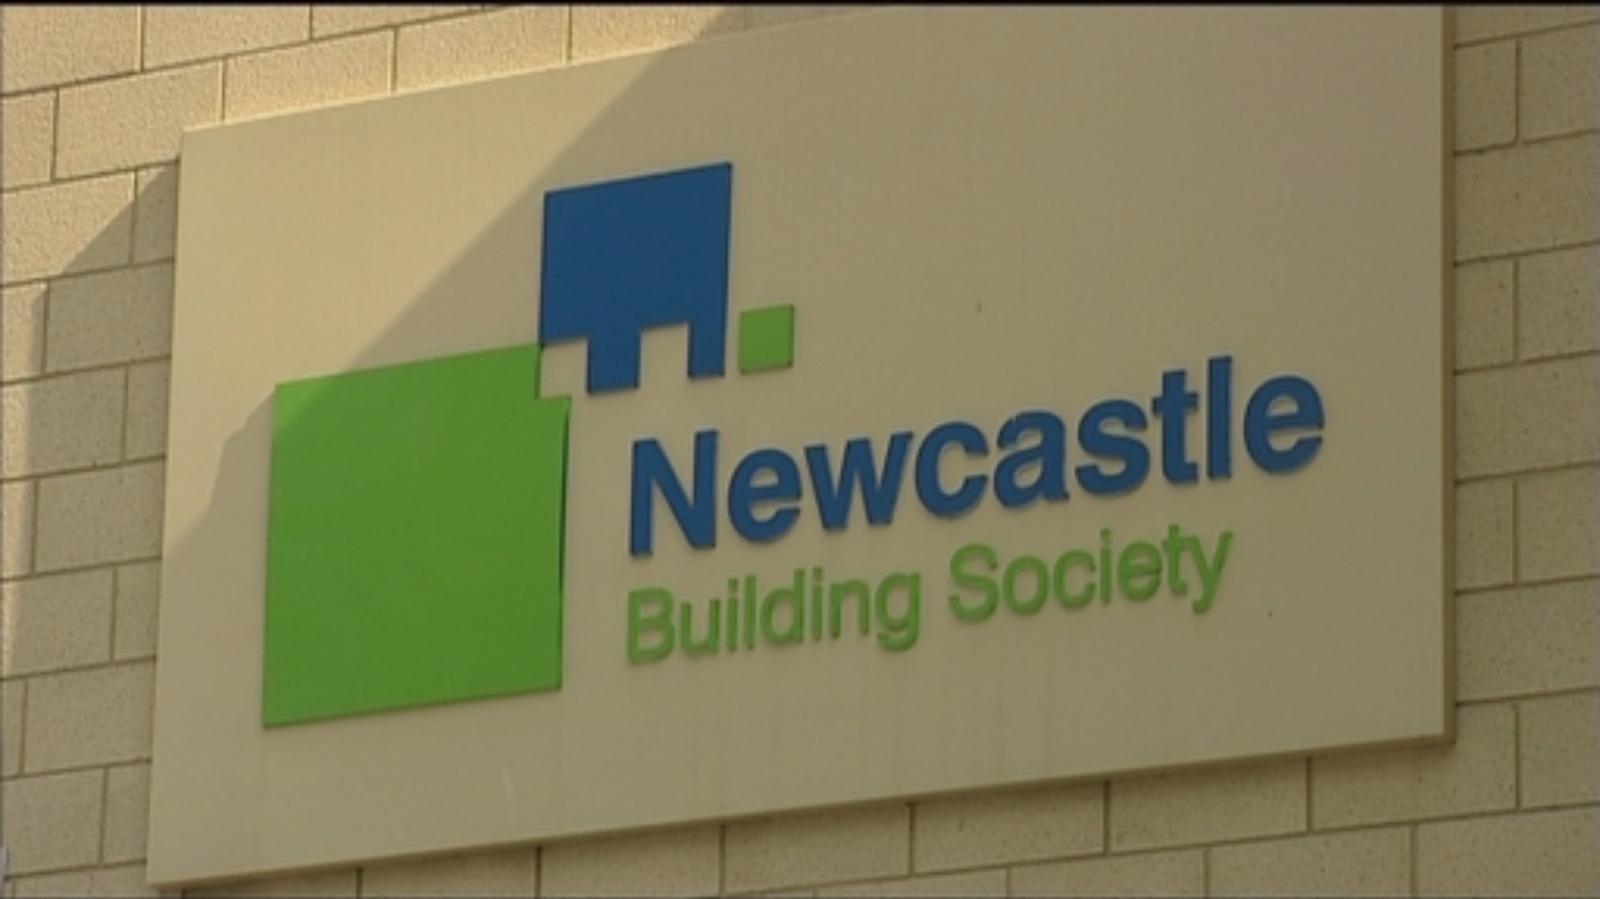 Newcastle Building Society Branches London